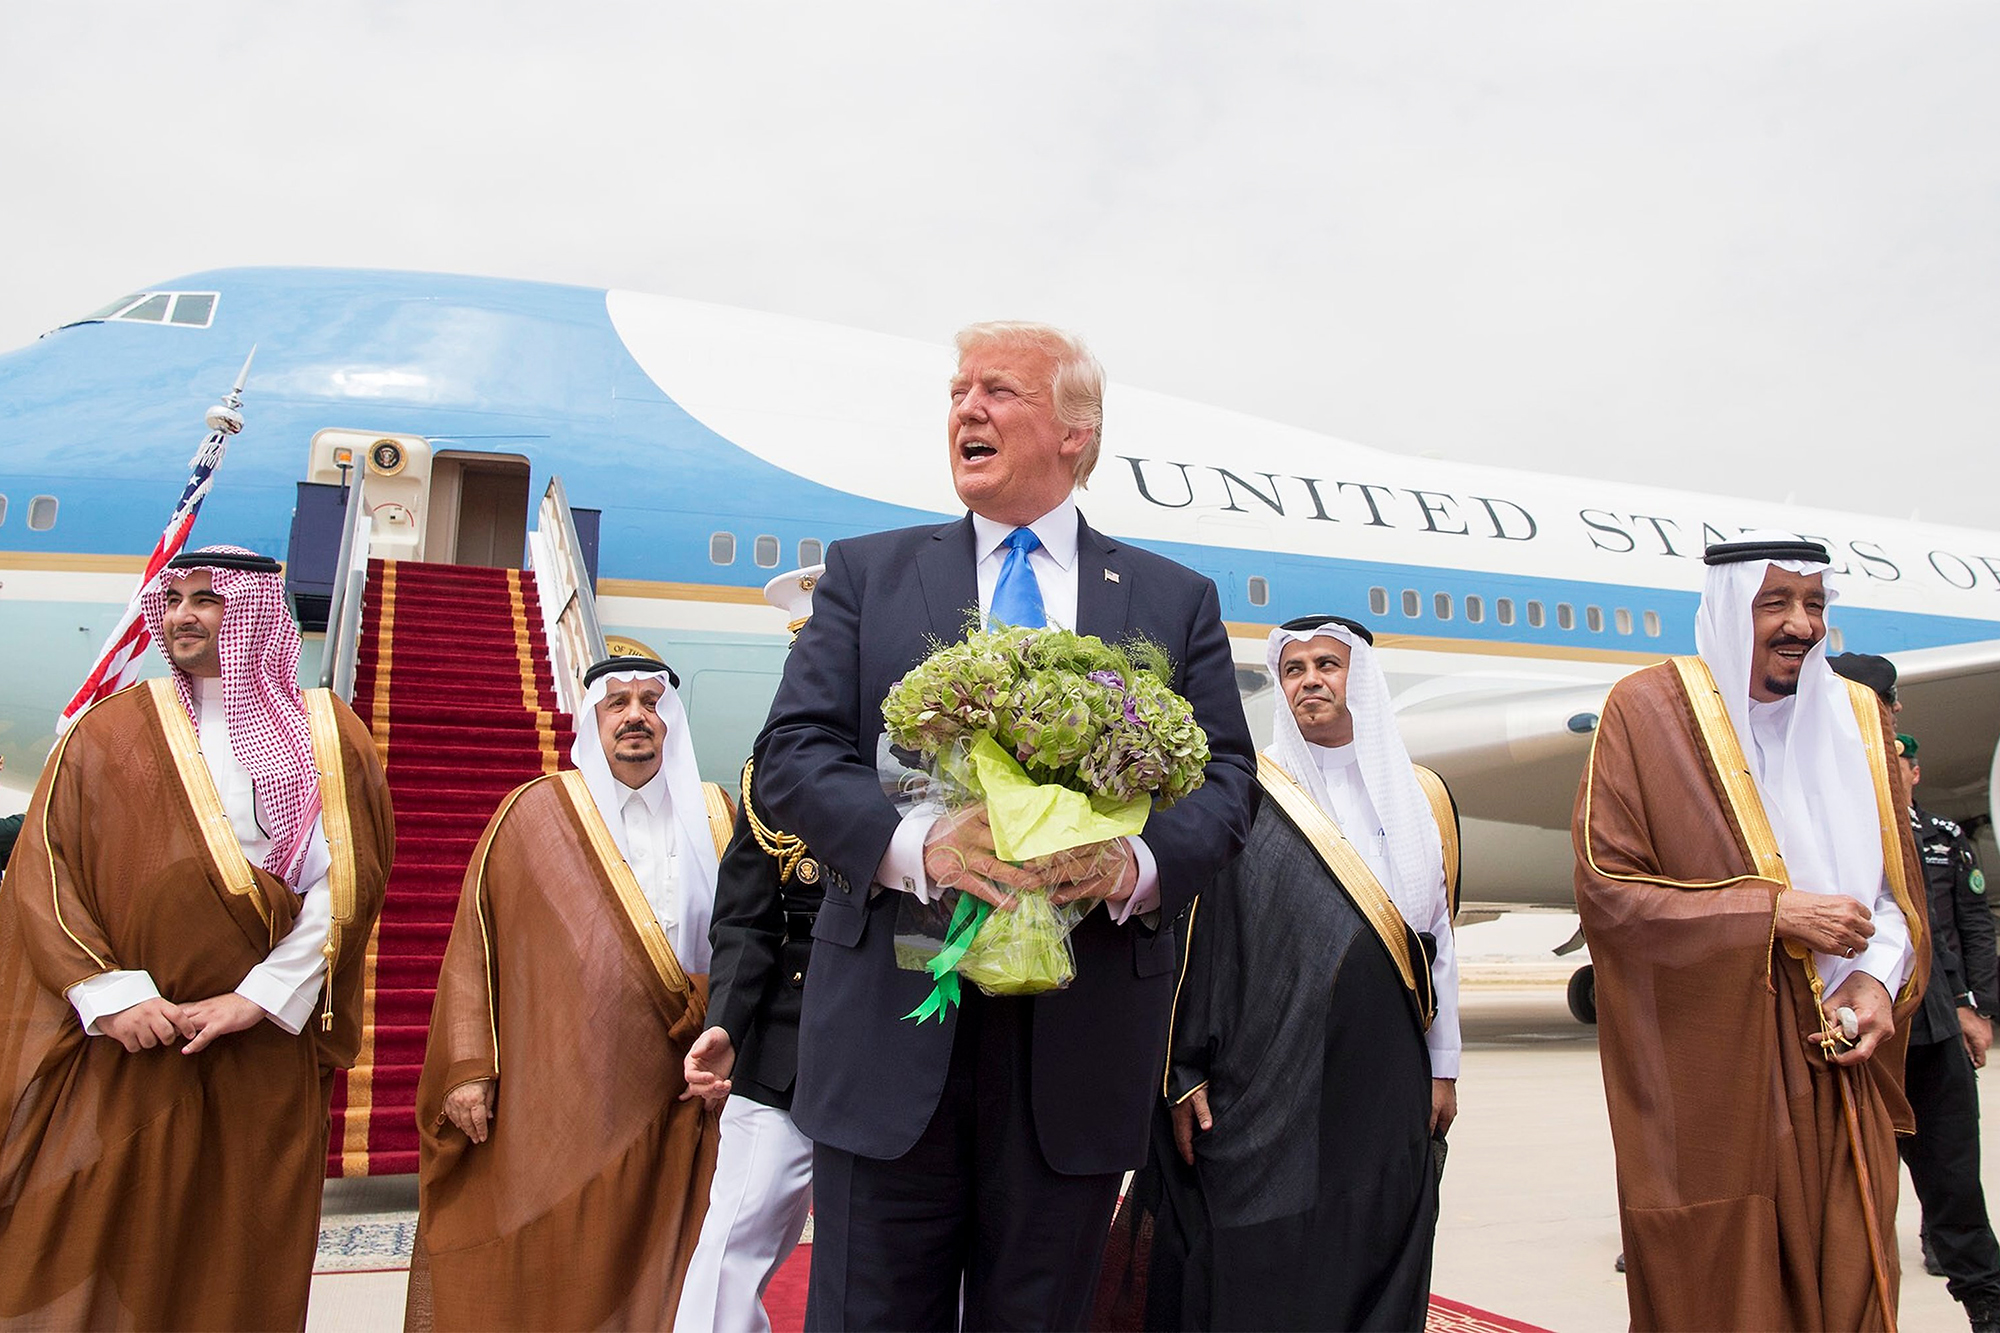 Saudi King Salman bin Abdulaziz Al Saud, right, receives Donald and Melania Trump in Riyadh, Saudi Arabia, on May 20, 2017.